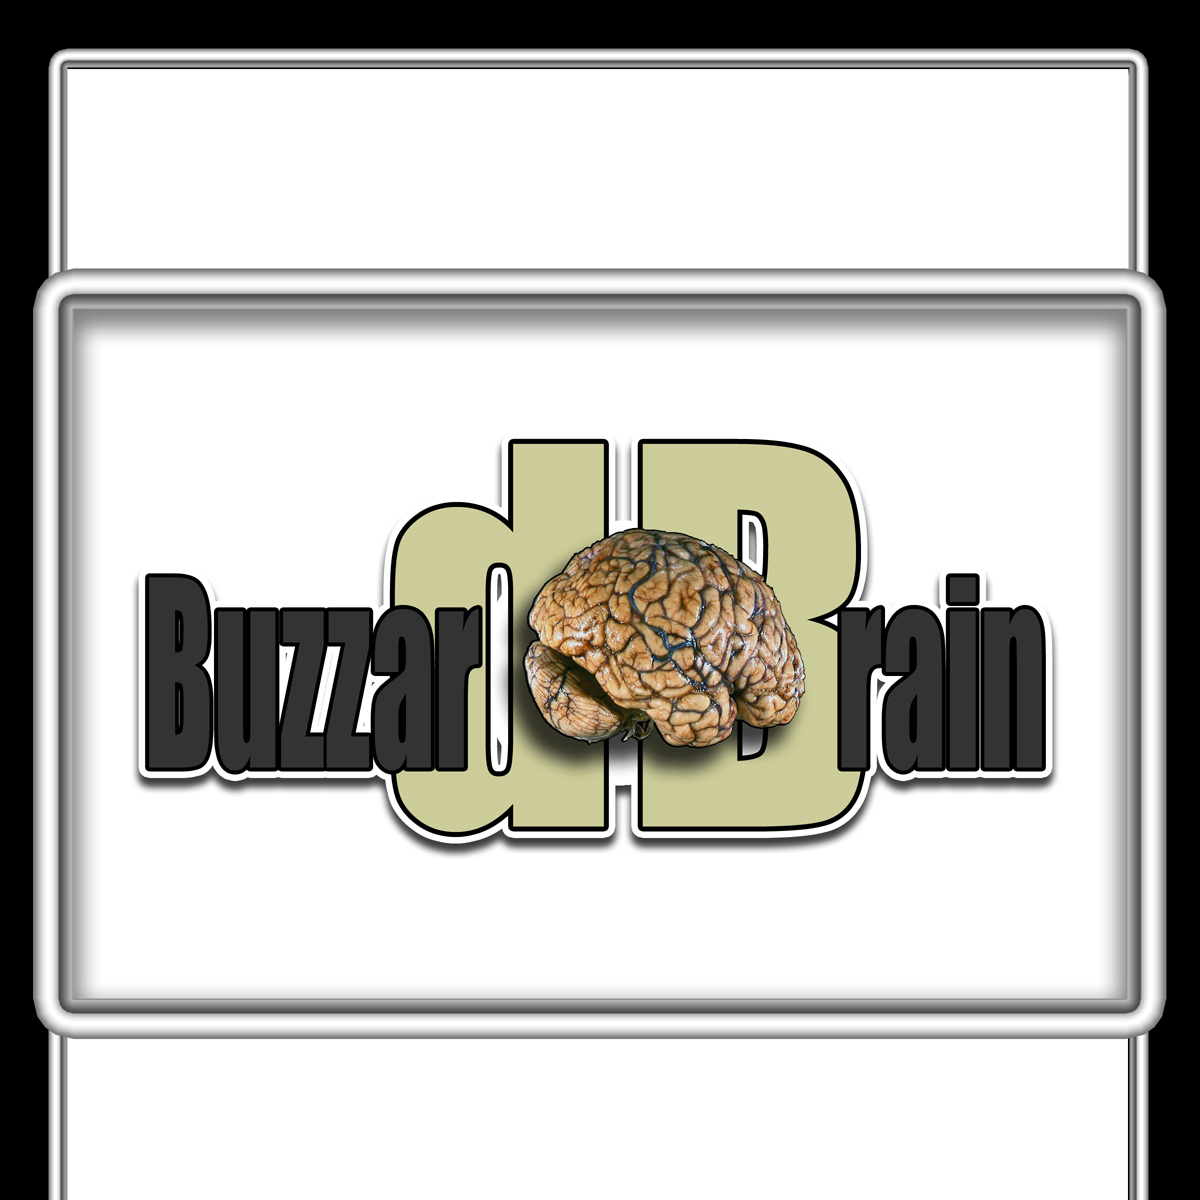 Logo Design by MITUCA ANDREI - Entry No. 18 in the Logo Design Contest Buzzard Brain Logo Design.